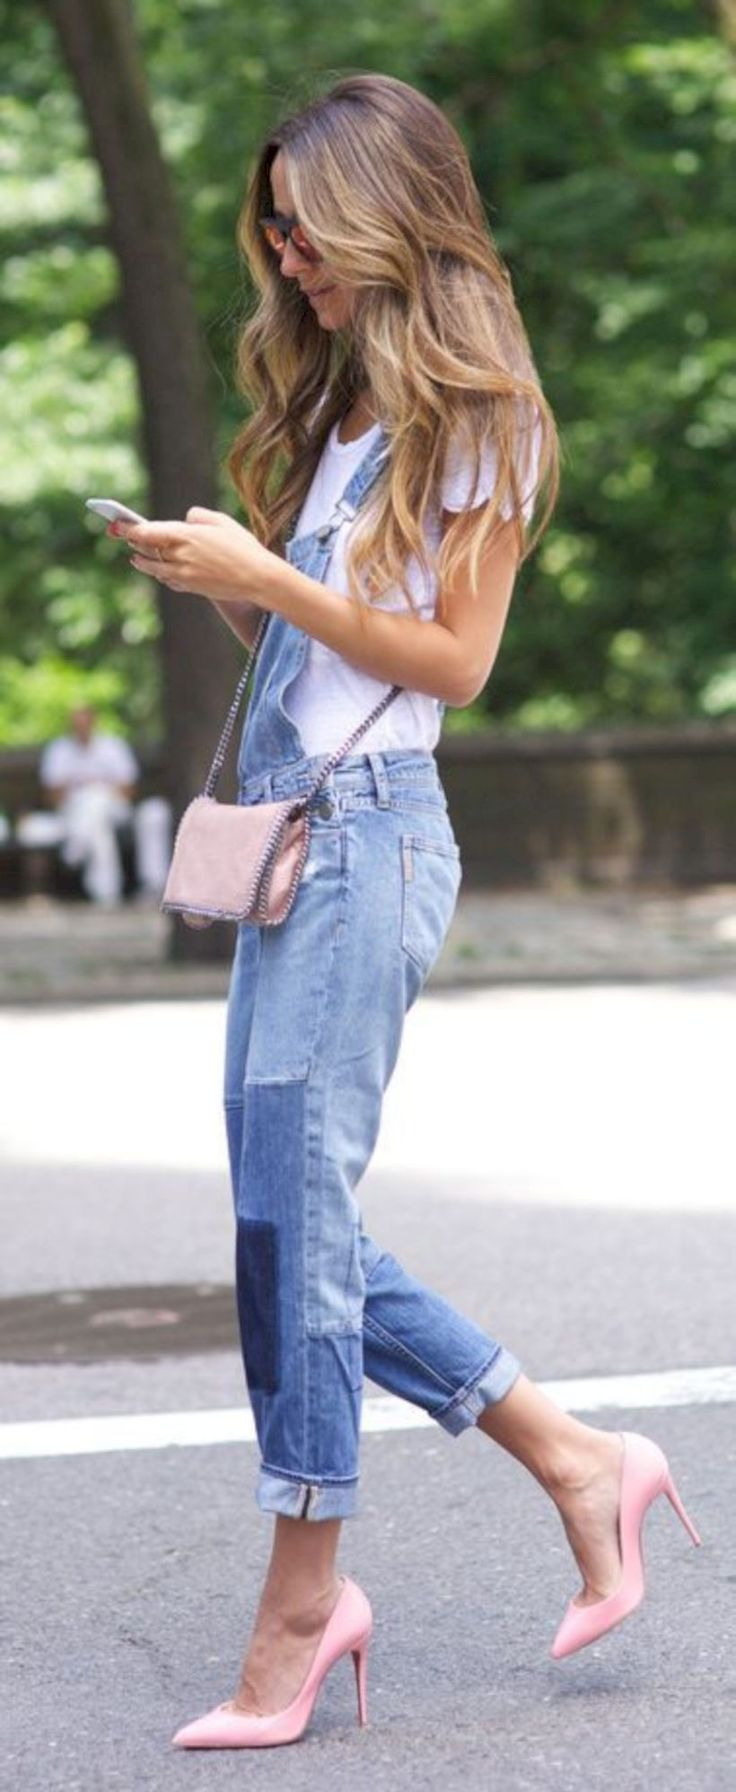 Cool 31 Minimal Chic Outfit Ideas to Help You Look Amazing This Season